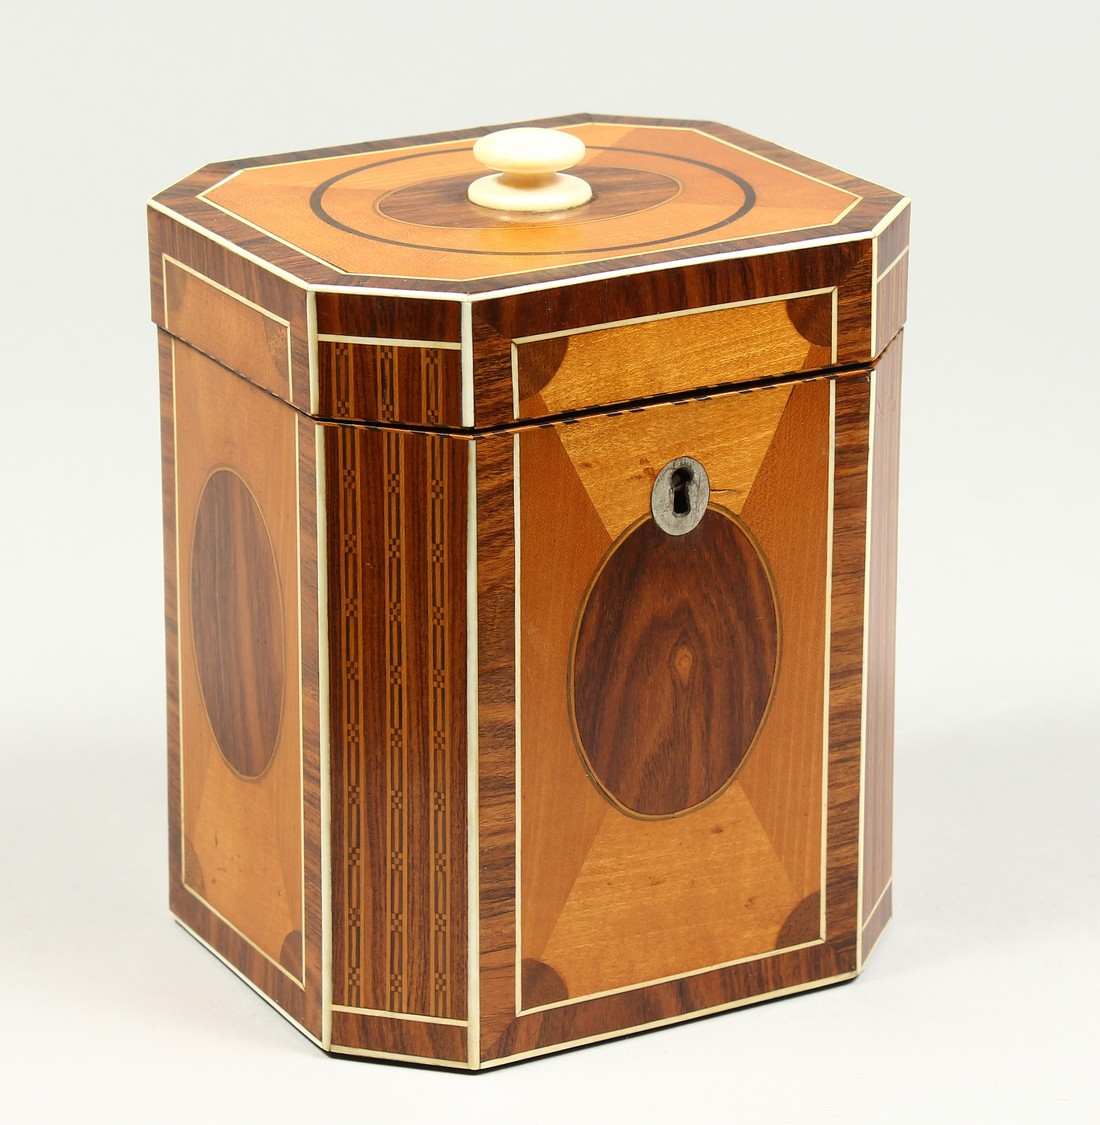 A SUPERB GEORGE III SATINWOOD BANDED TEA CADDY with rosewood and ivory canted corners and ivory